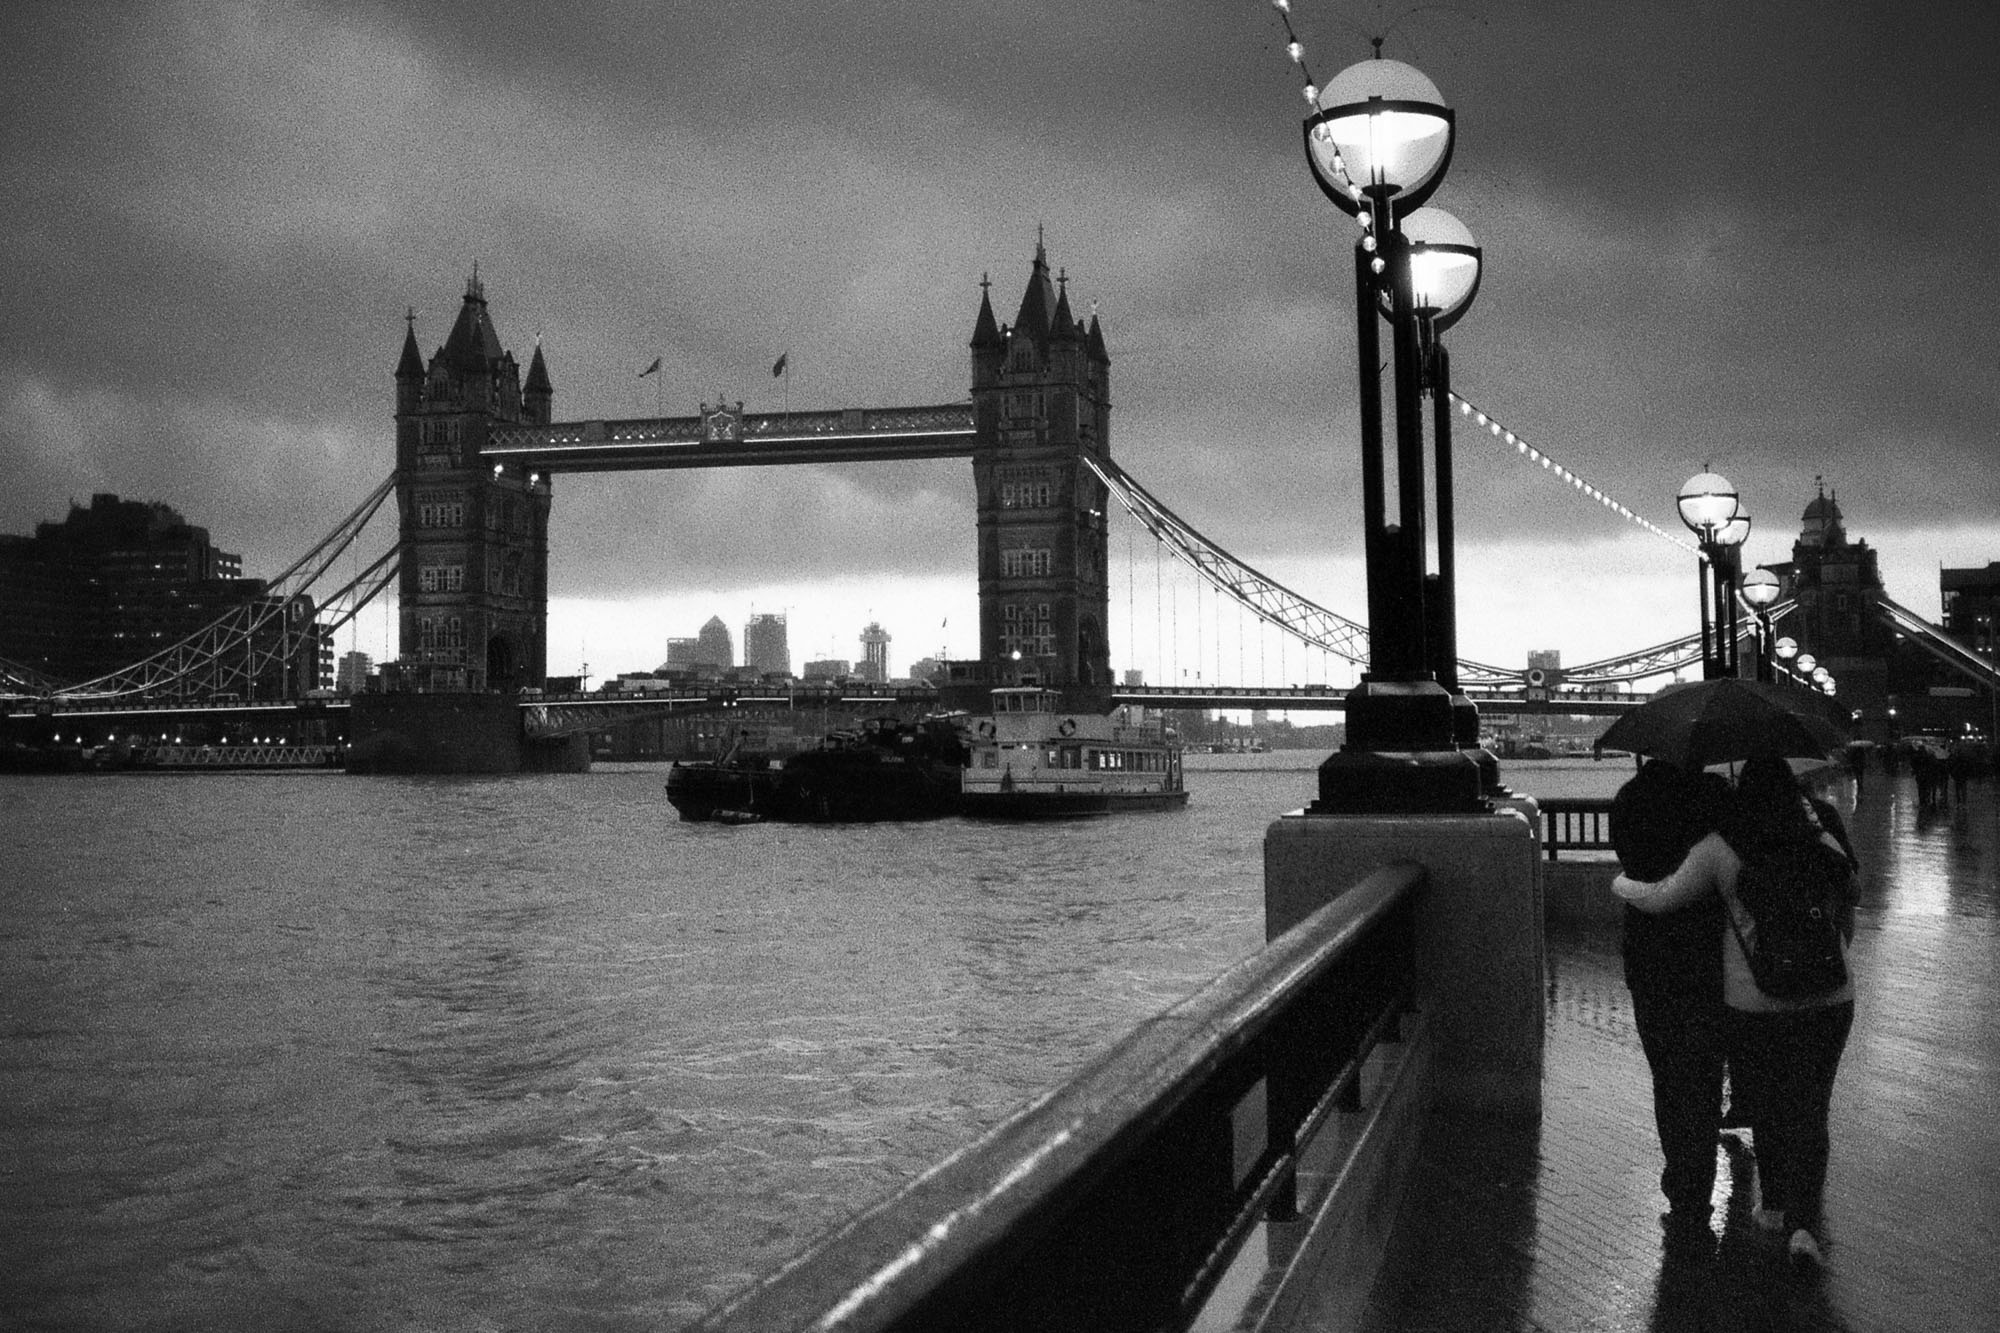 Contax T2 - Tower Bridge at night on grainy Kodak T-MAX 3200 film